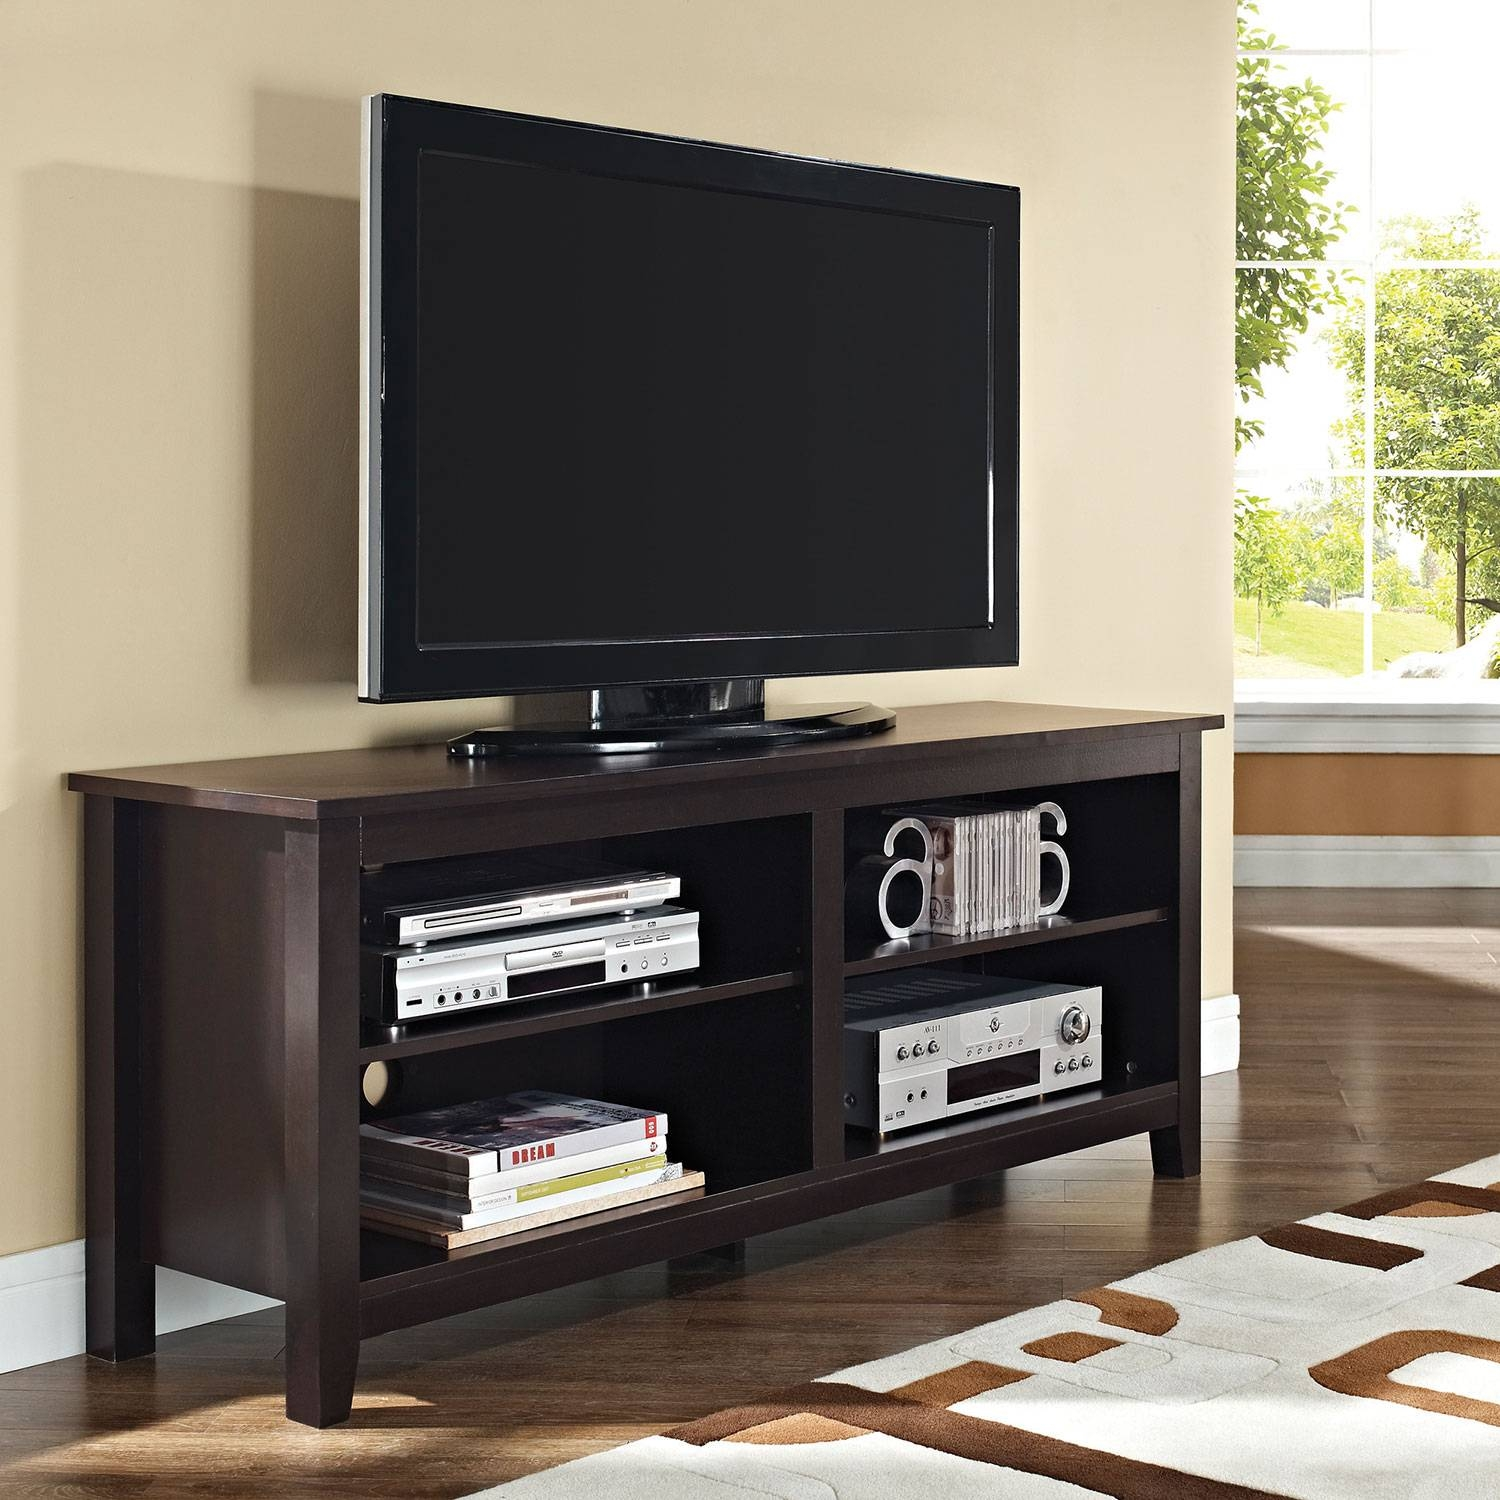 "Walker Edison 65"" Tv Stand - Espresso : Tv Stands - Best Buy Canada with Expresso Tv Stands (Image 13 of 15)"